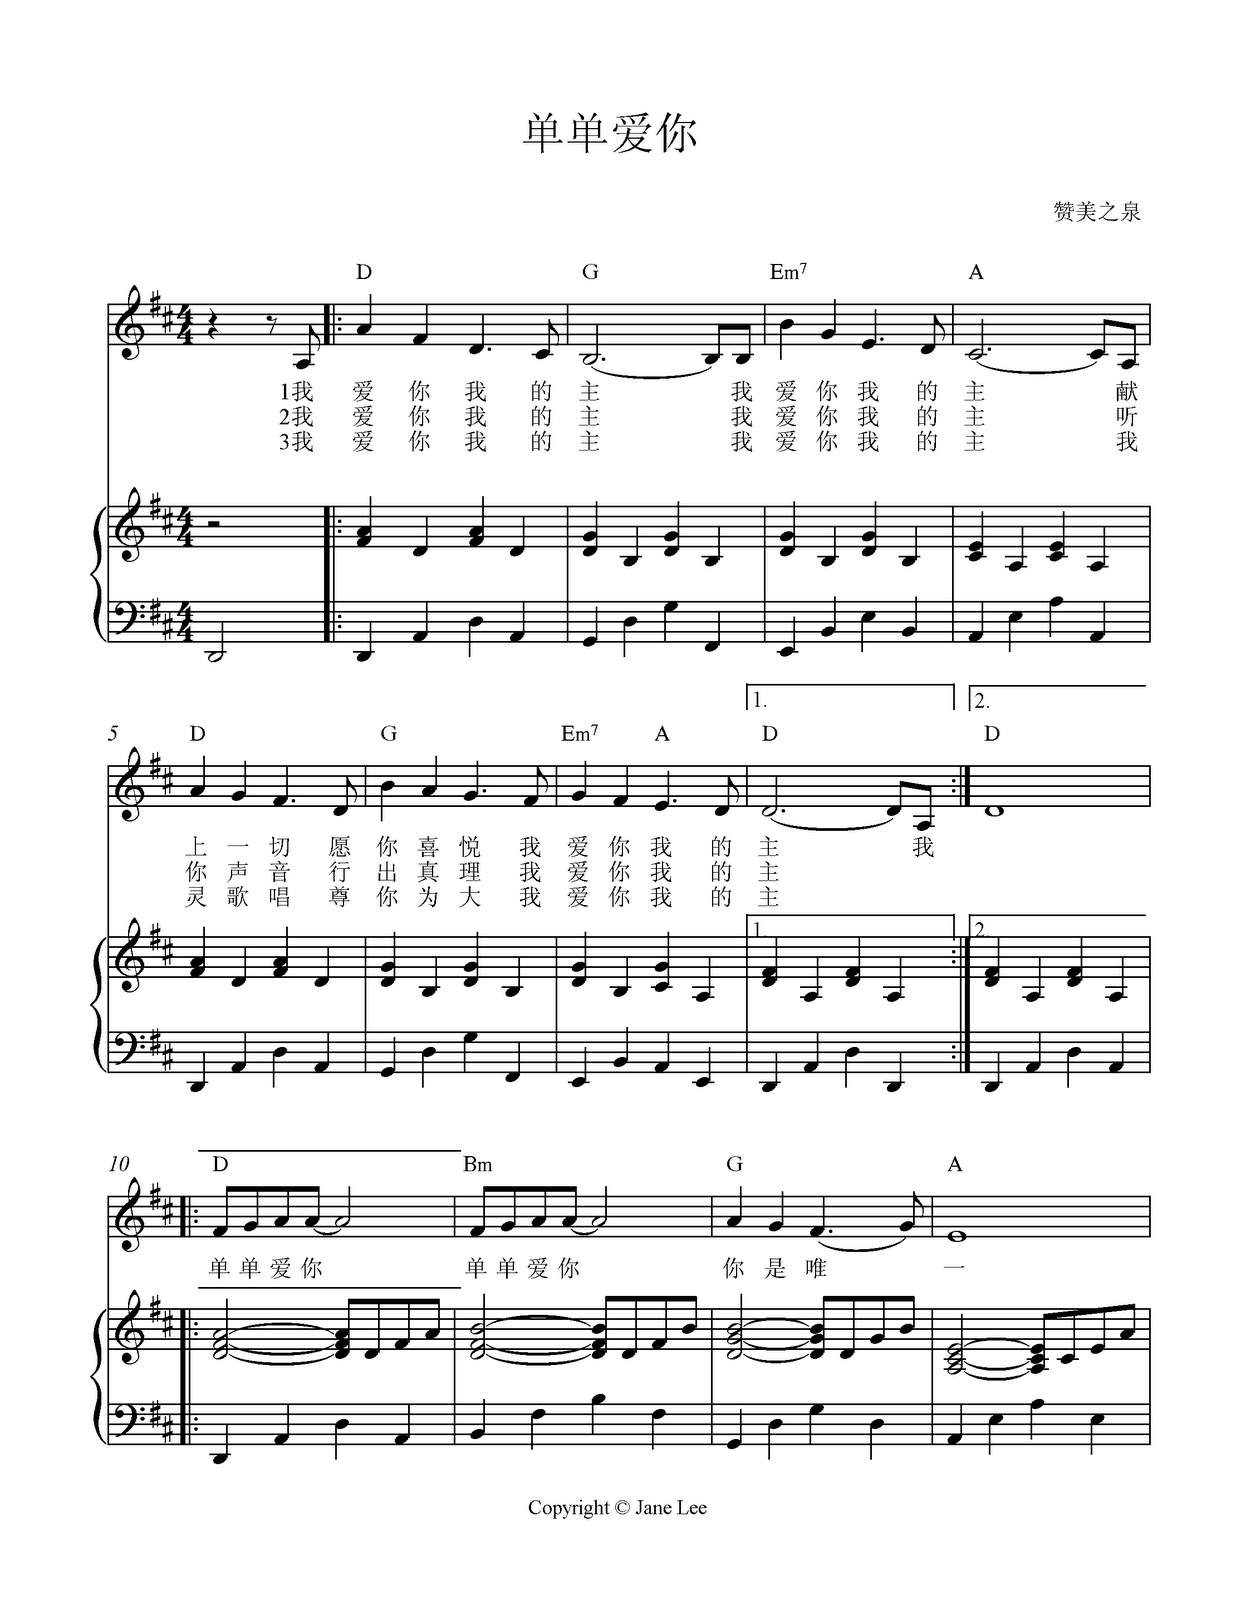 I love you lord guitar chords choice image guitar chords examples ripple thoughts i love you lord i love you lord fatherlandz choice image hexwebz Choice Image